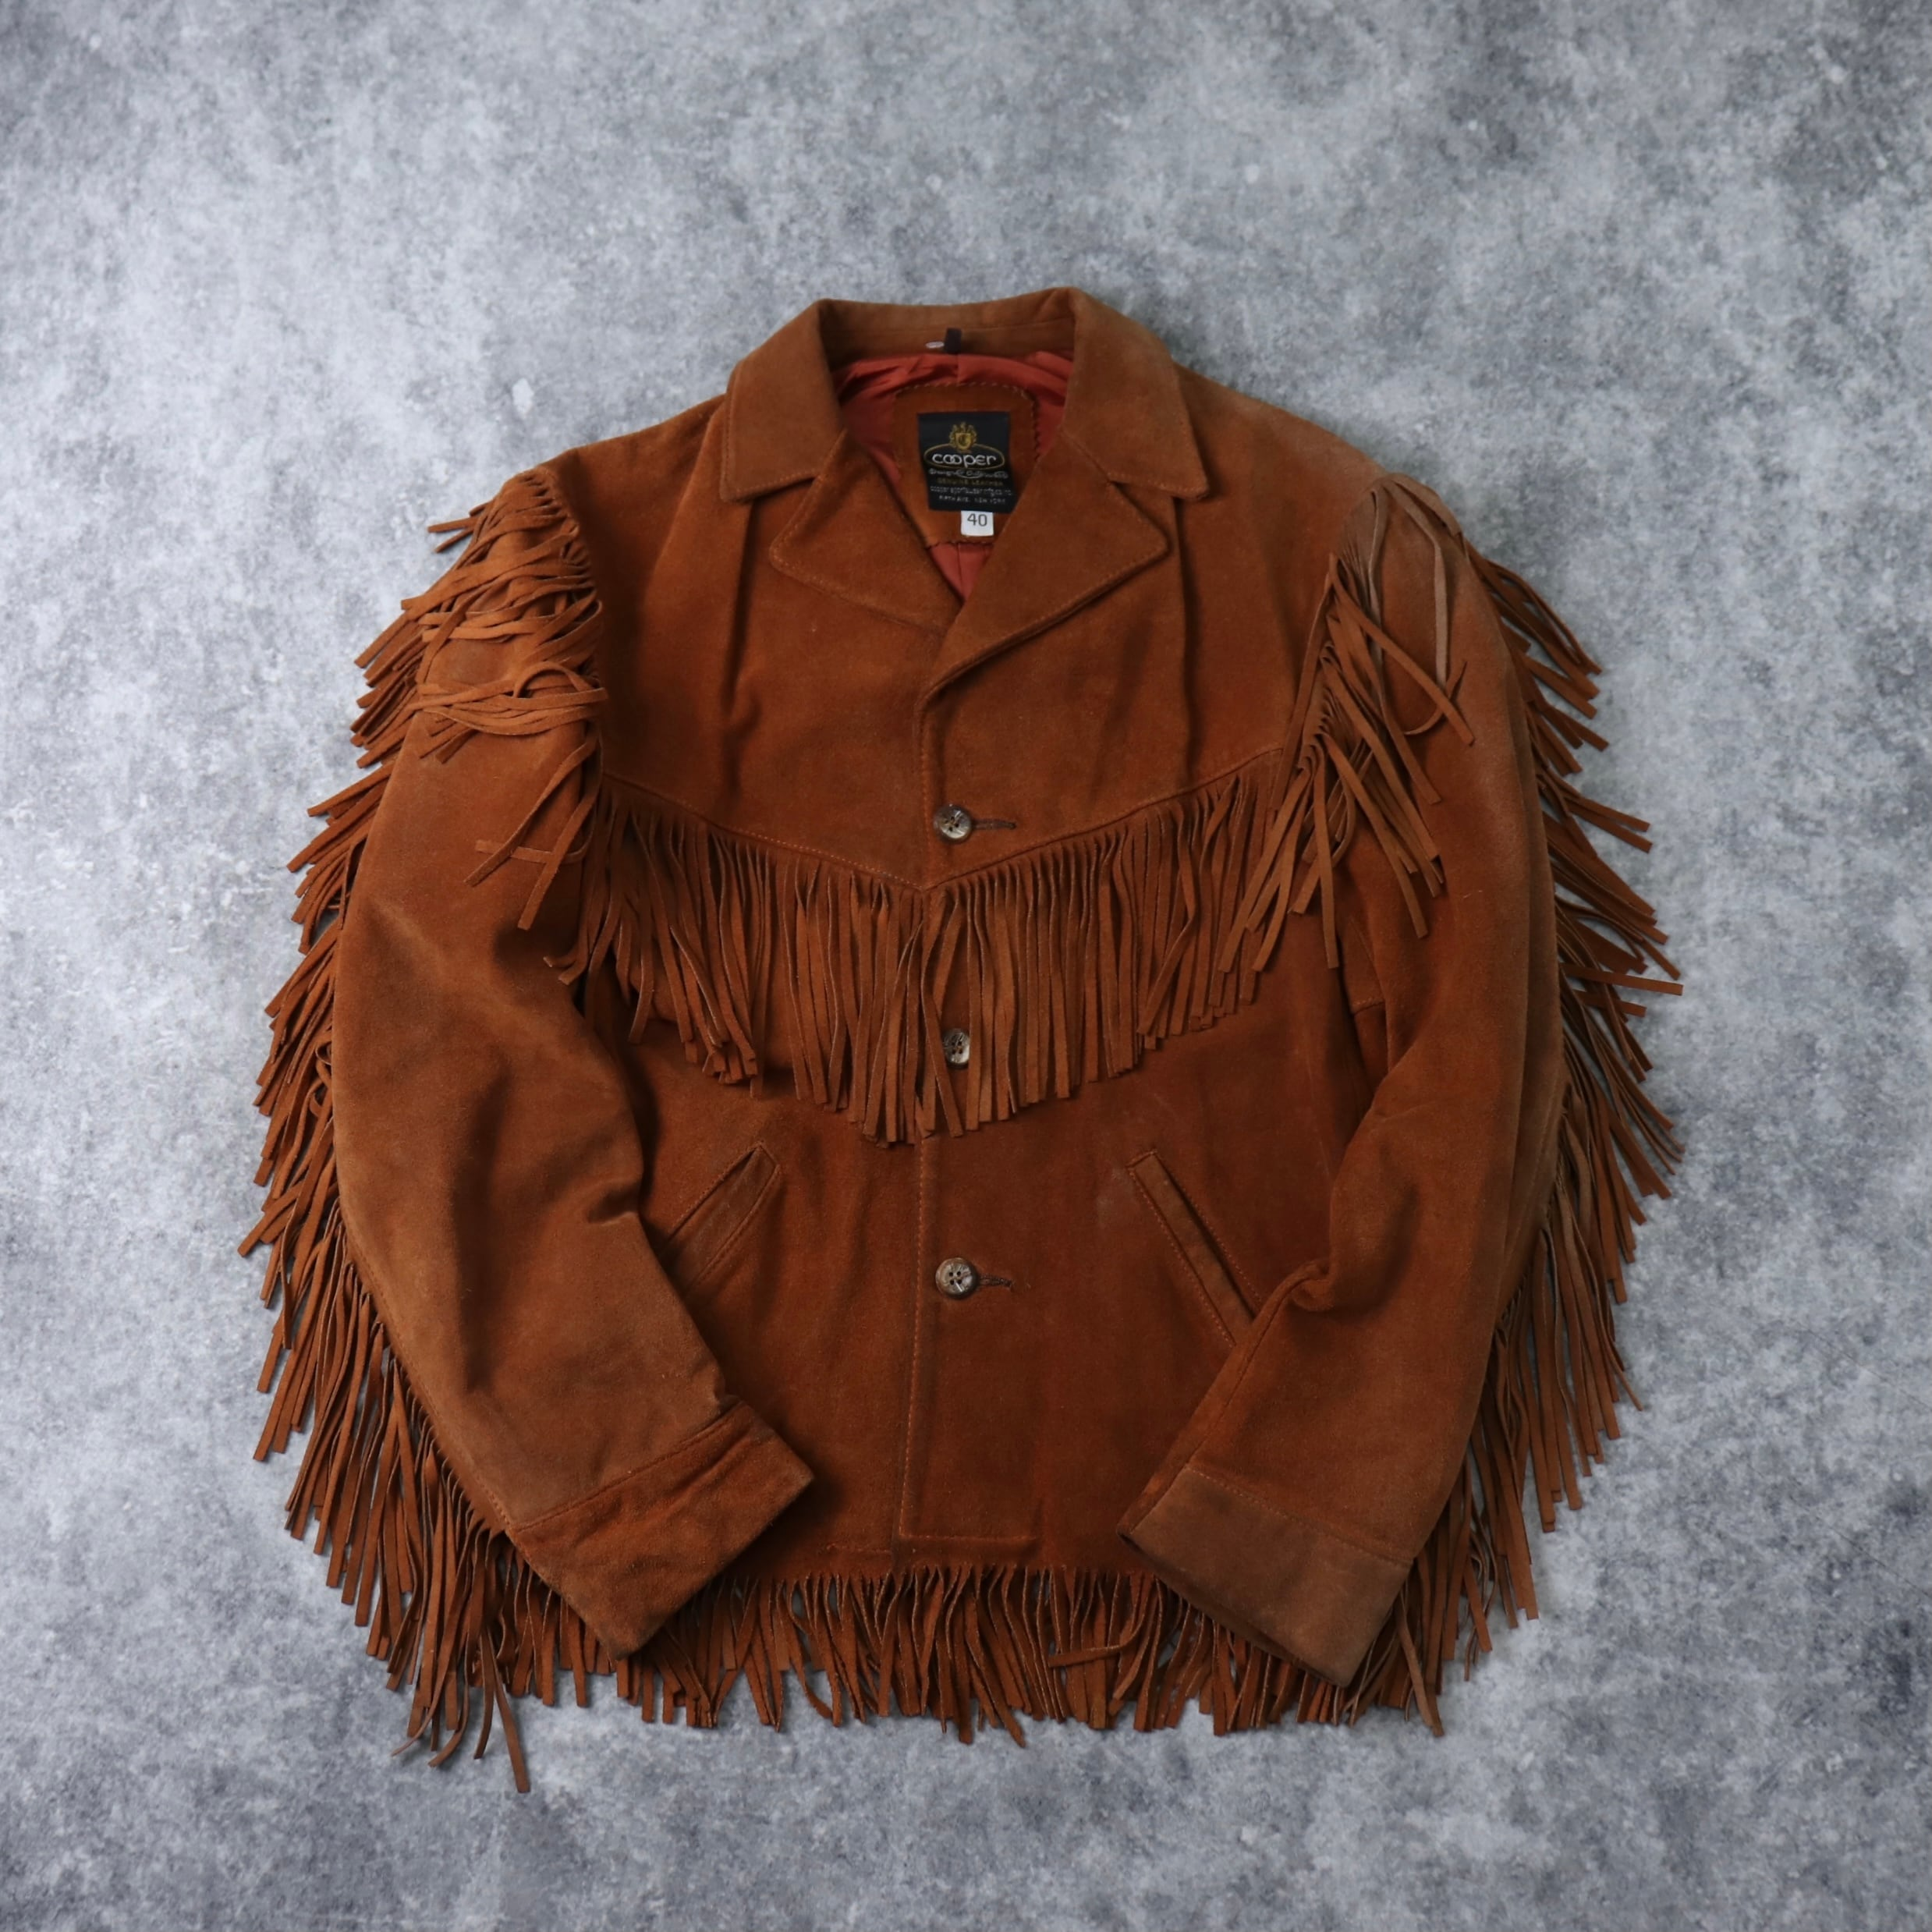 """70s  """" Cooper """"  Suede  Leather  Jacket  40   70年代 クーパー スエードレザージャケット フリンジ ブラウン 古着 A658"""